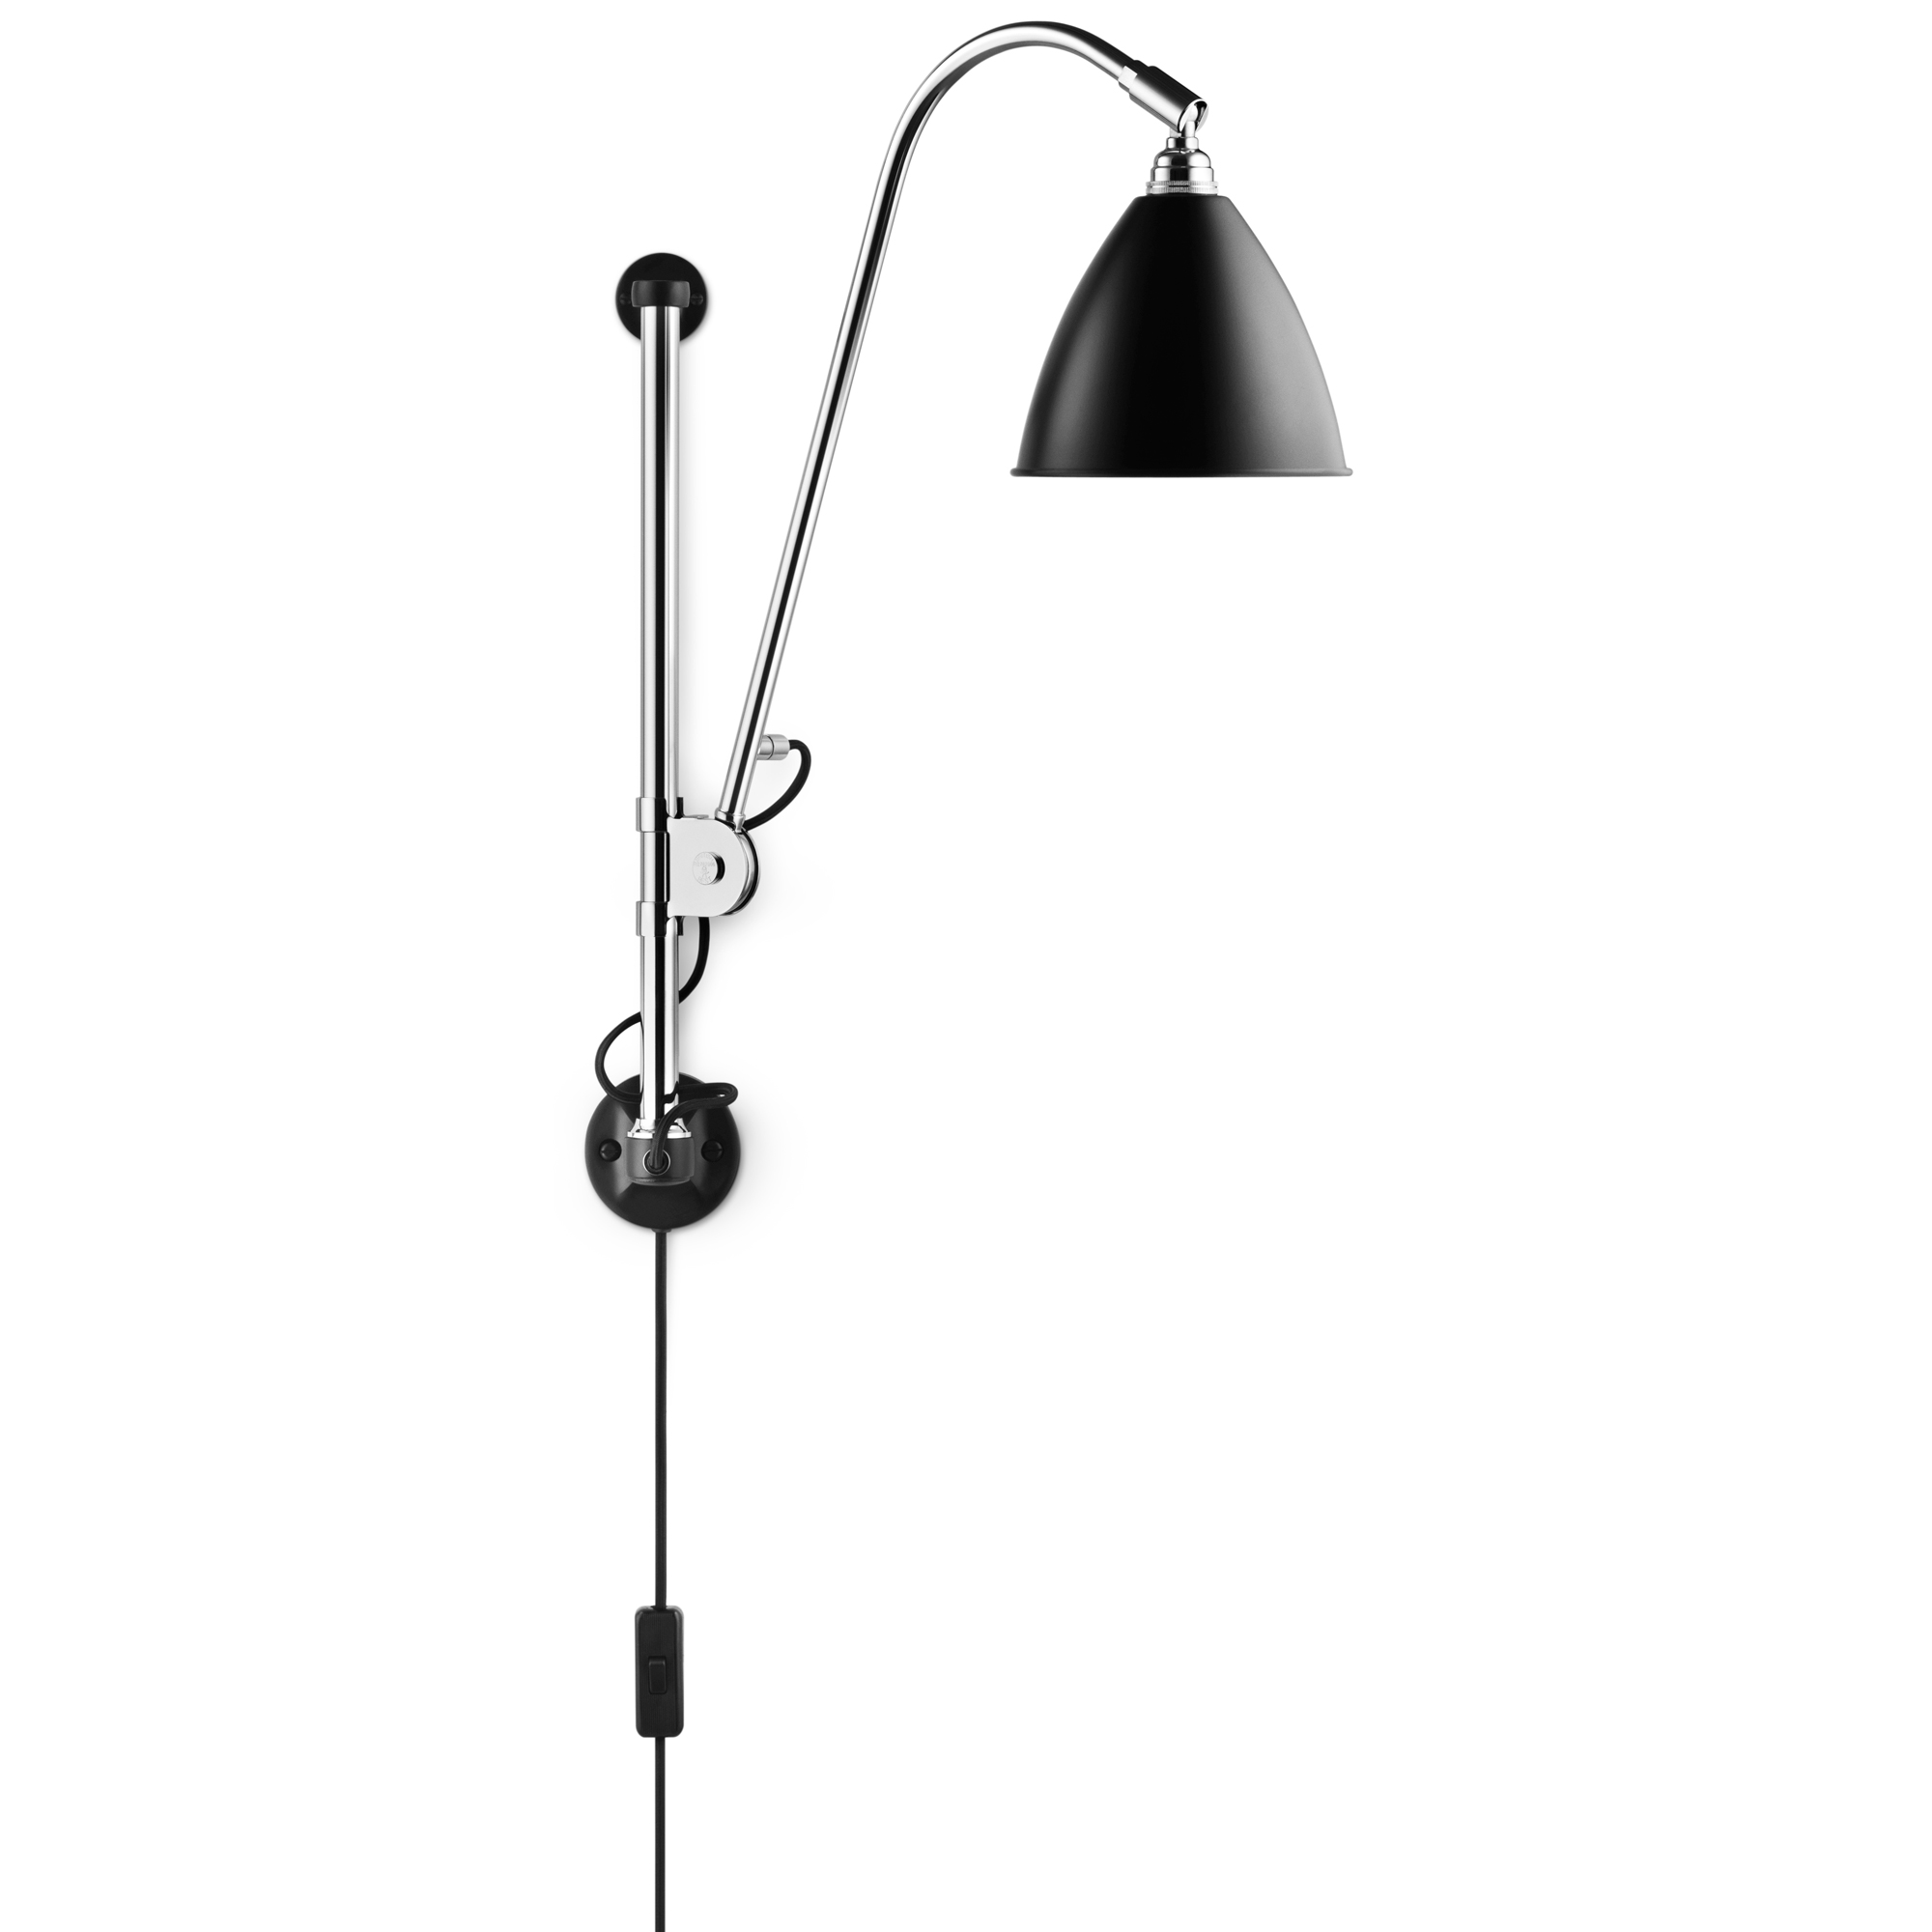 bestlite bl5 swing arm plug in wall sconce by gubi